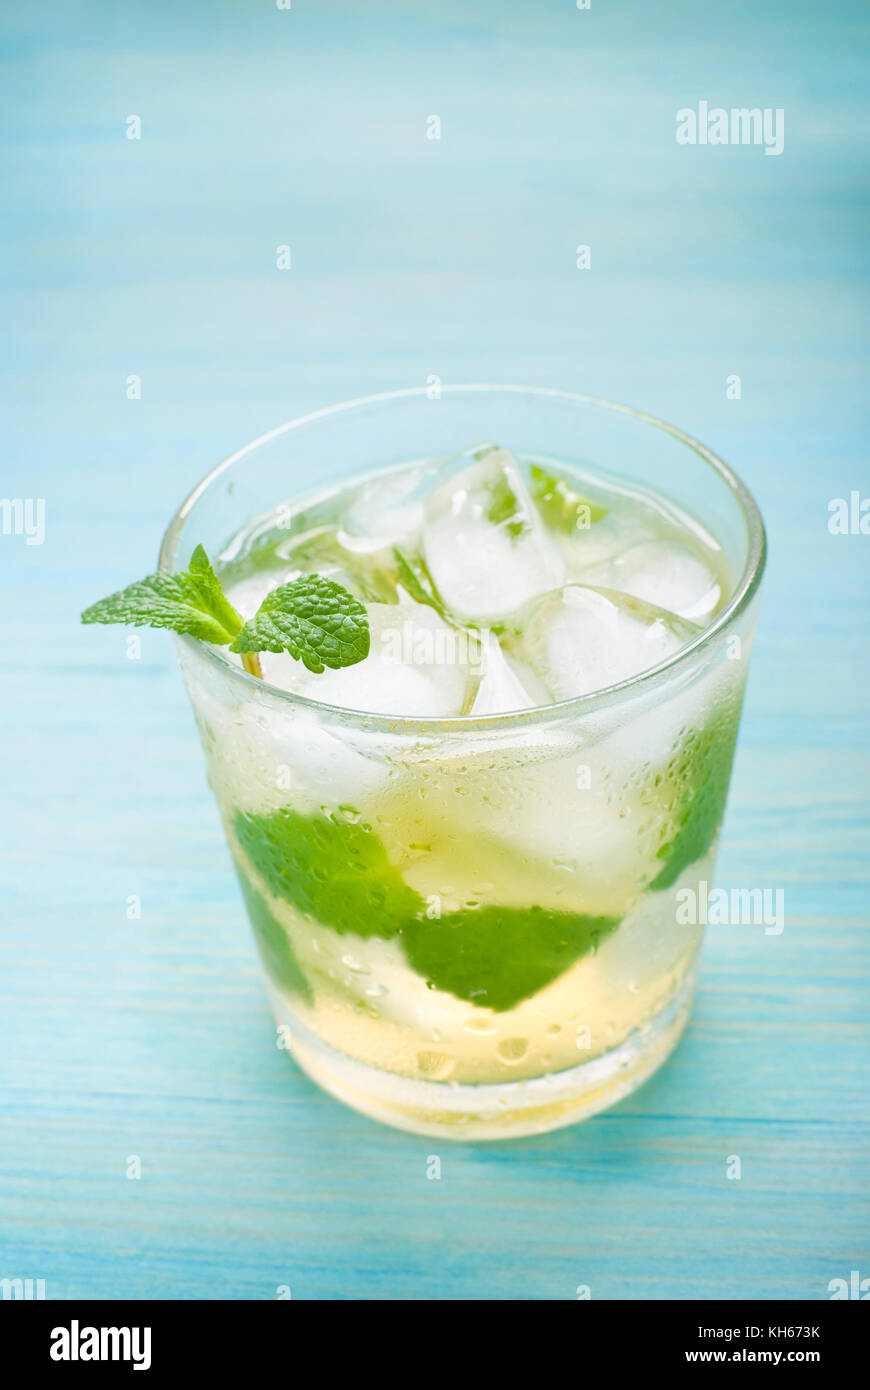 cocktail with mint and ice on blue wooden background - Stock Image